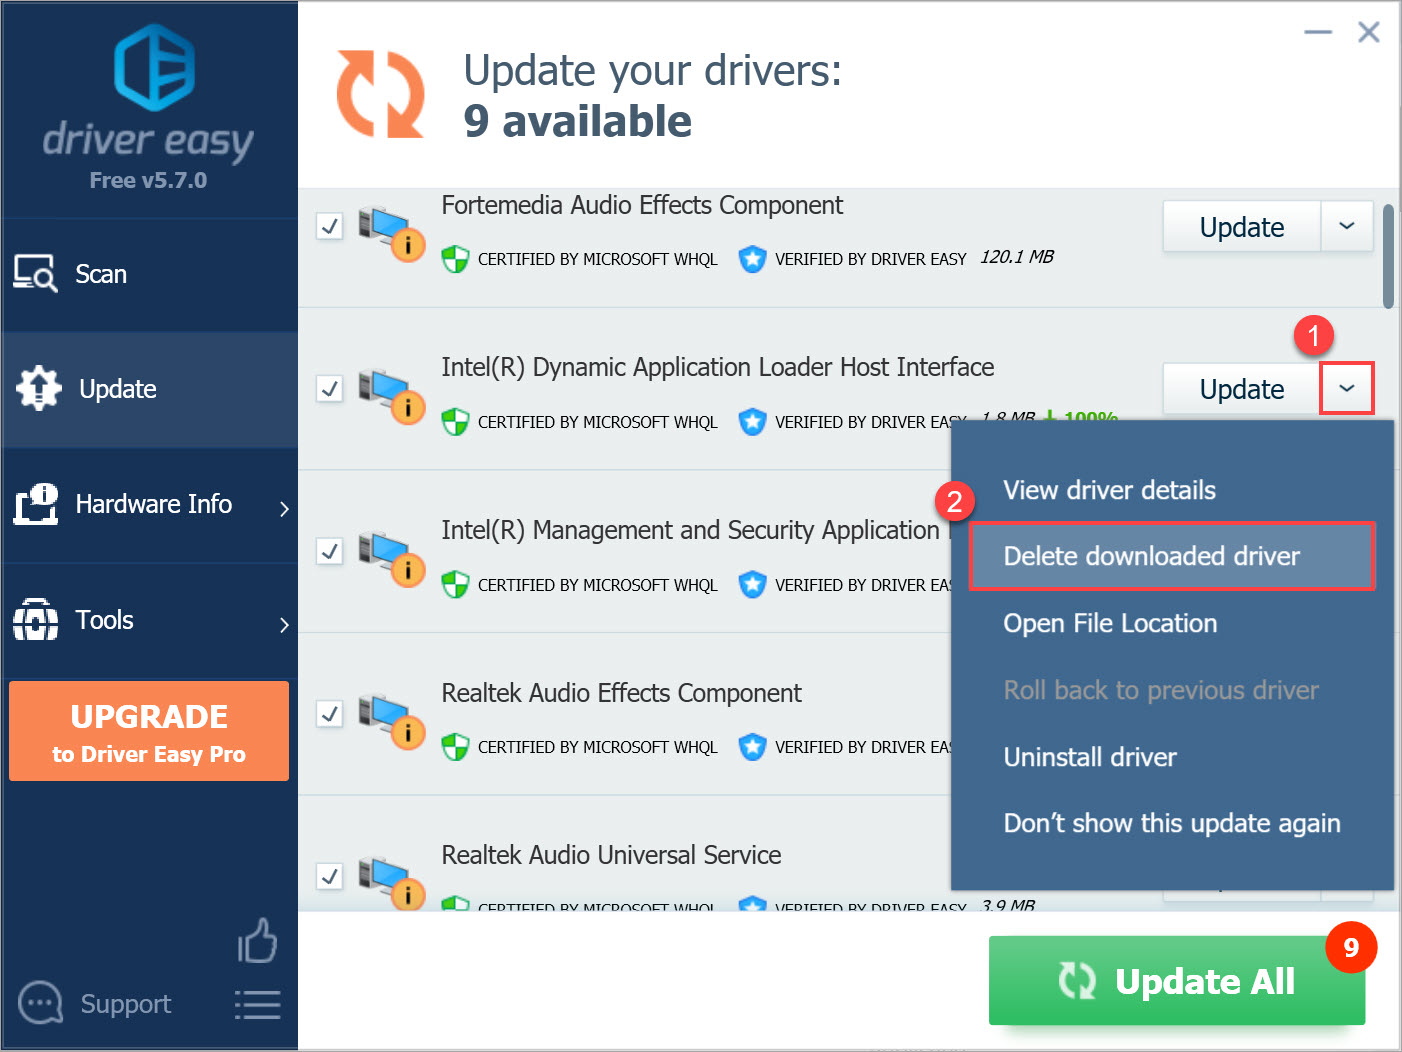 Driver Easy Free delete downloaded driver